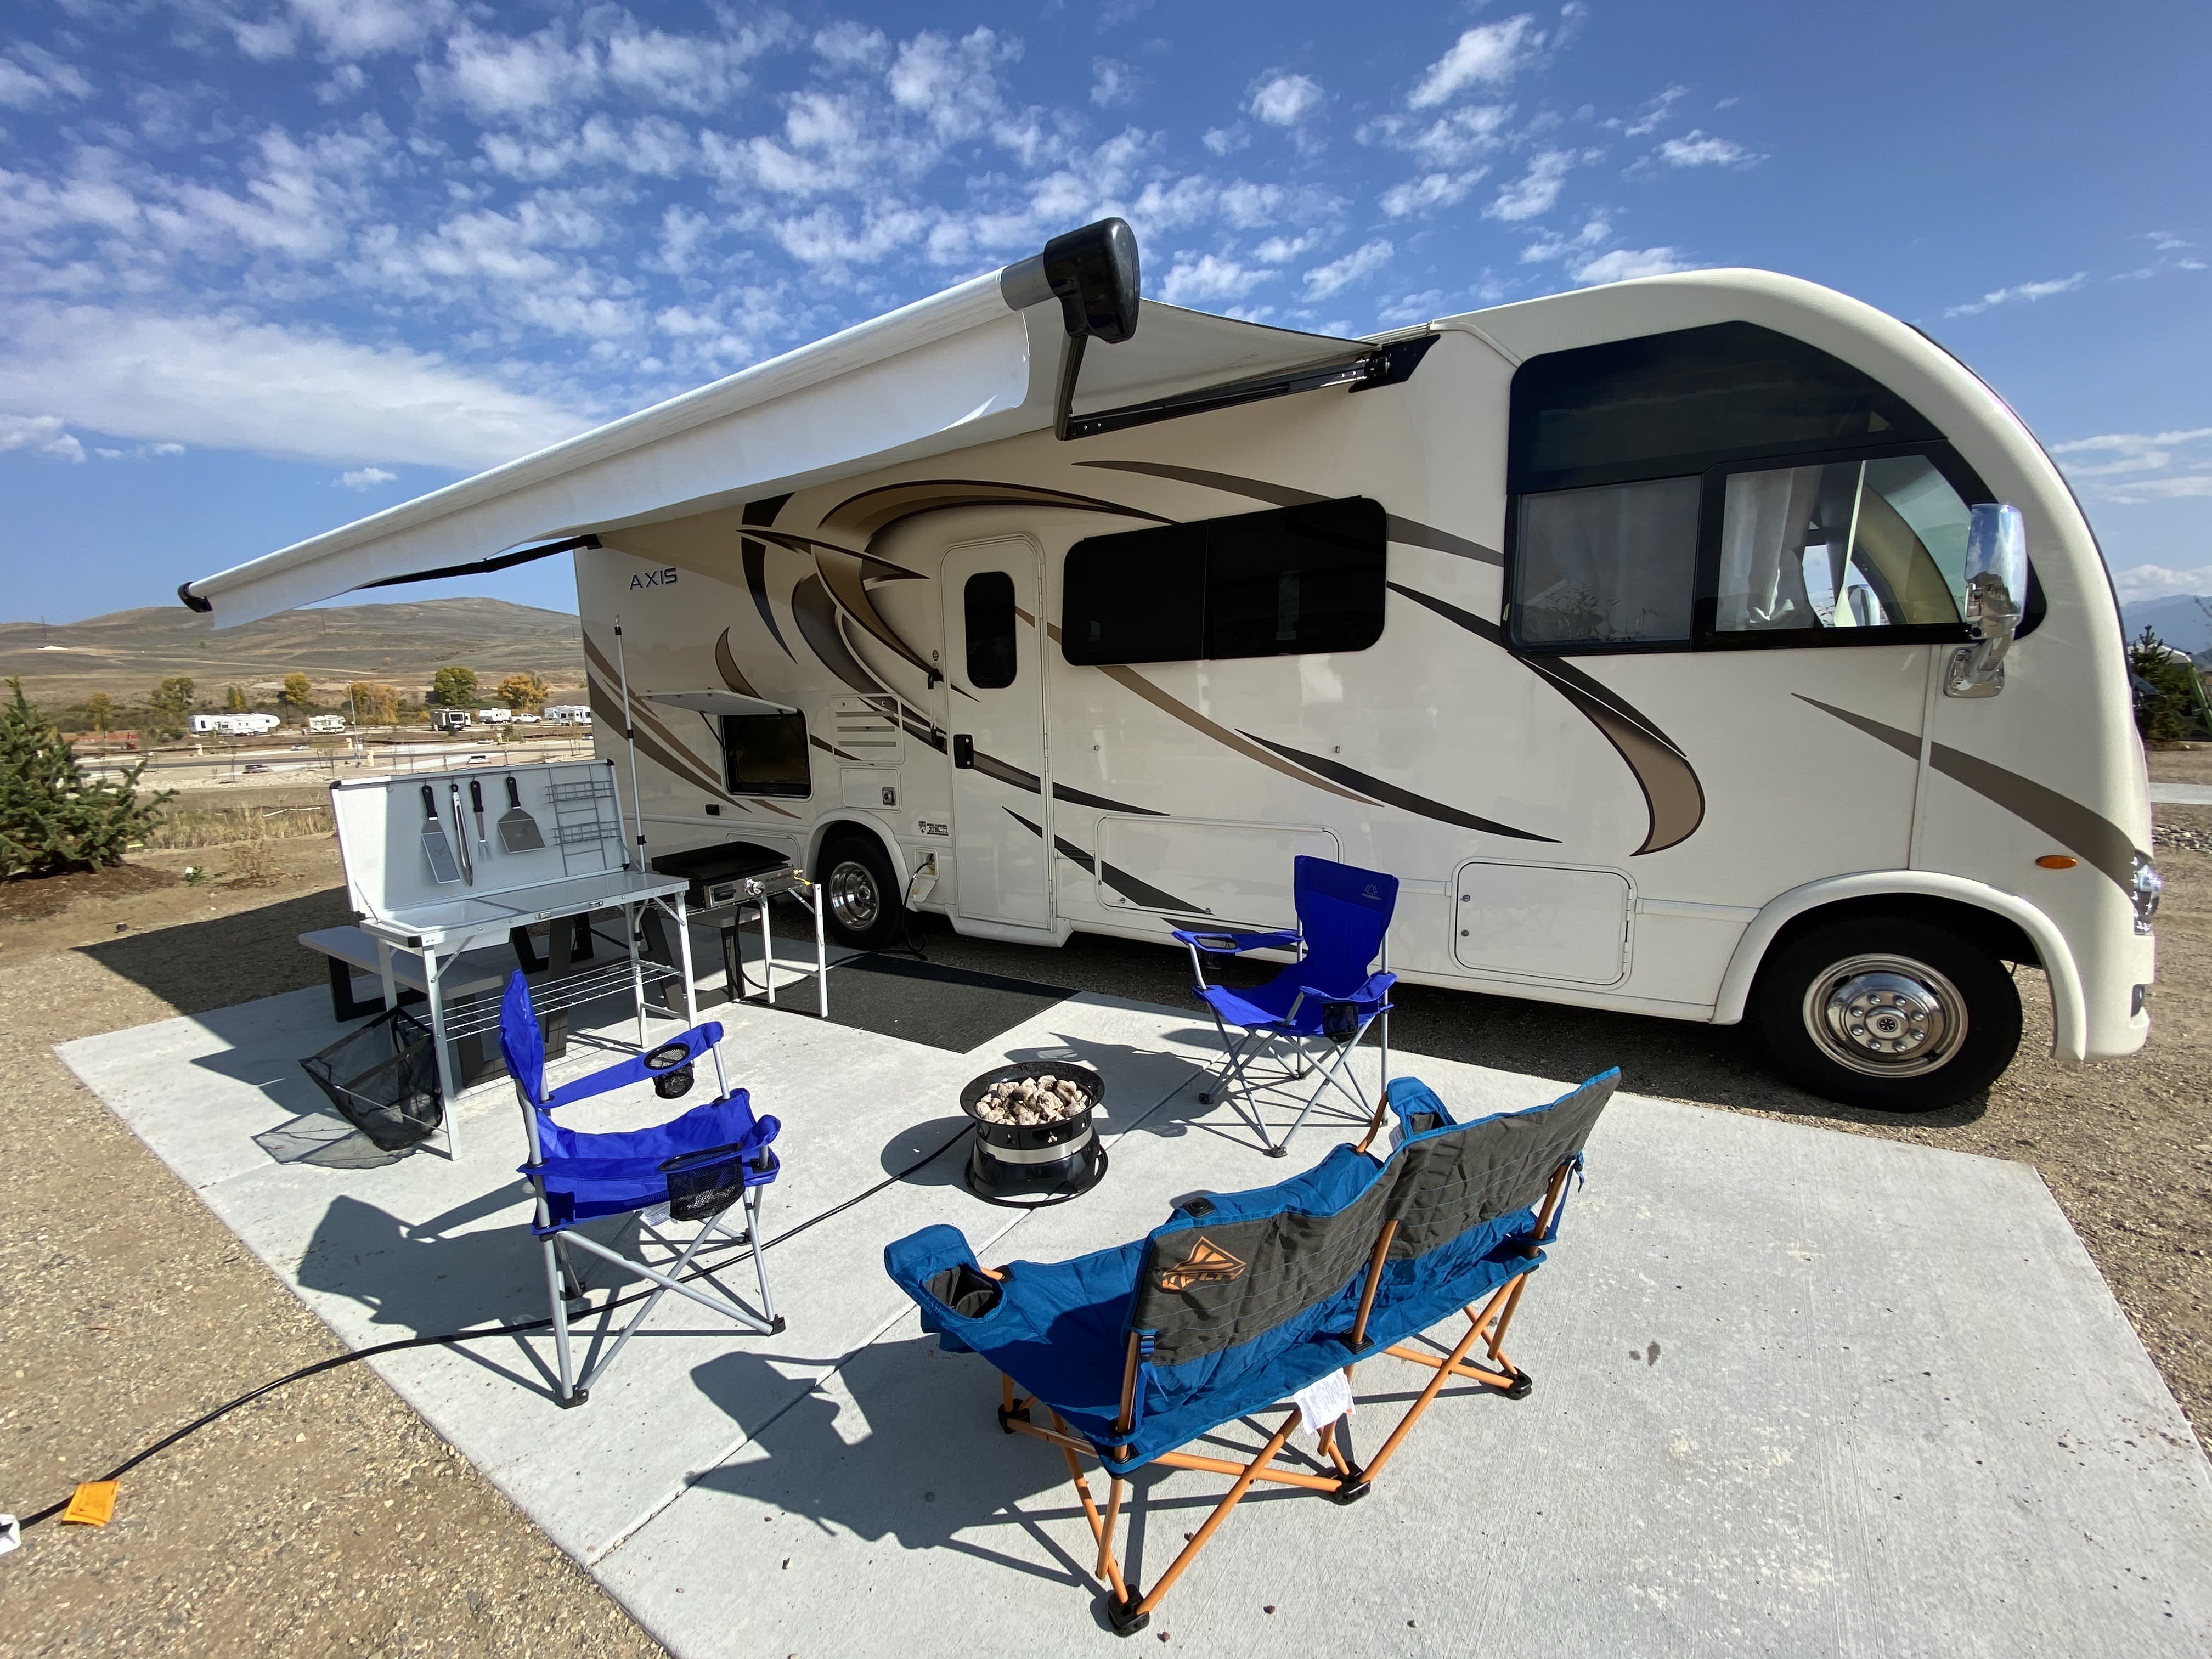 Park, level, deploy awning, and camp! (Shown with optional FREE add-ons). Thor Motor Coach Axis 2019